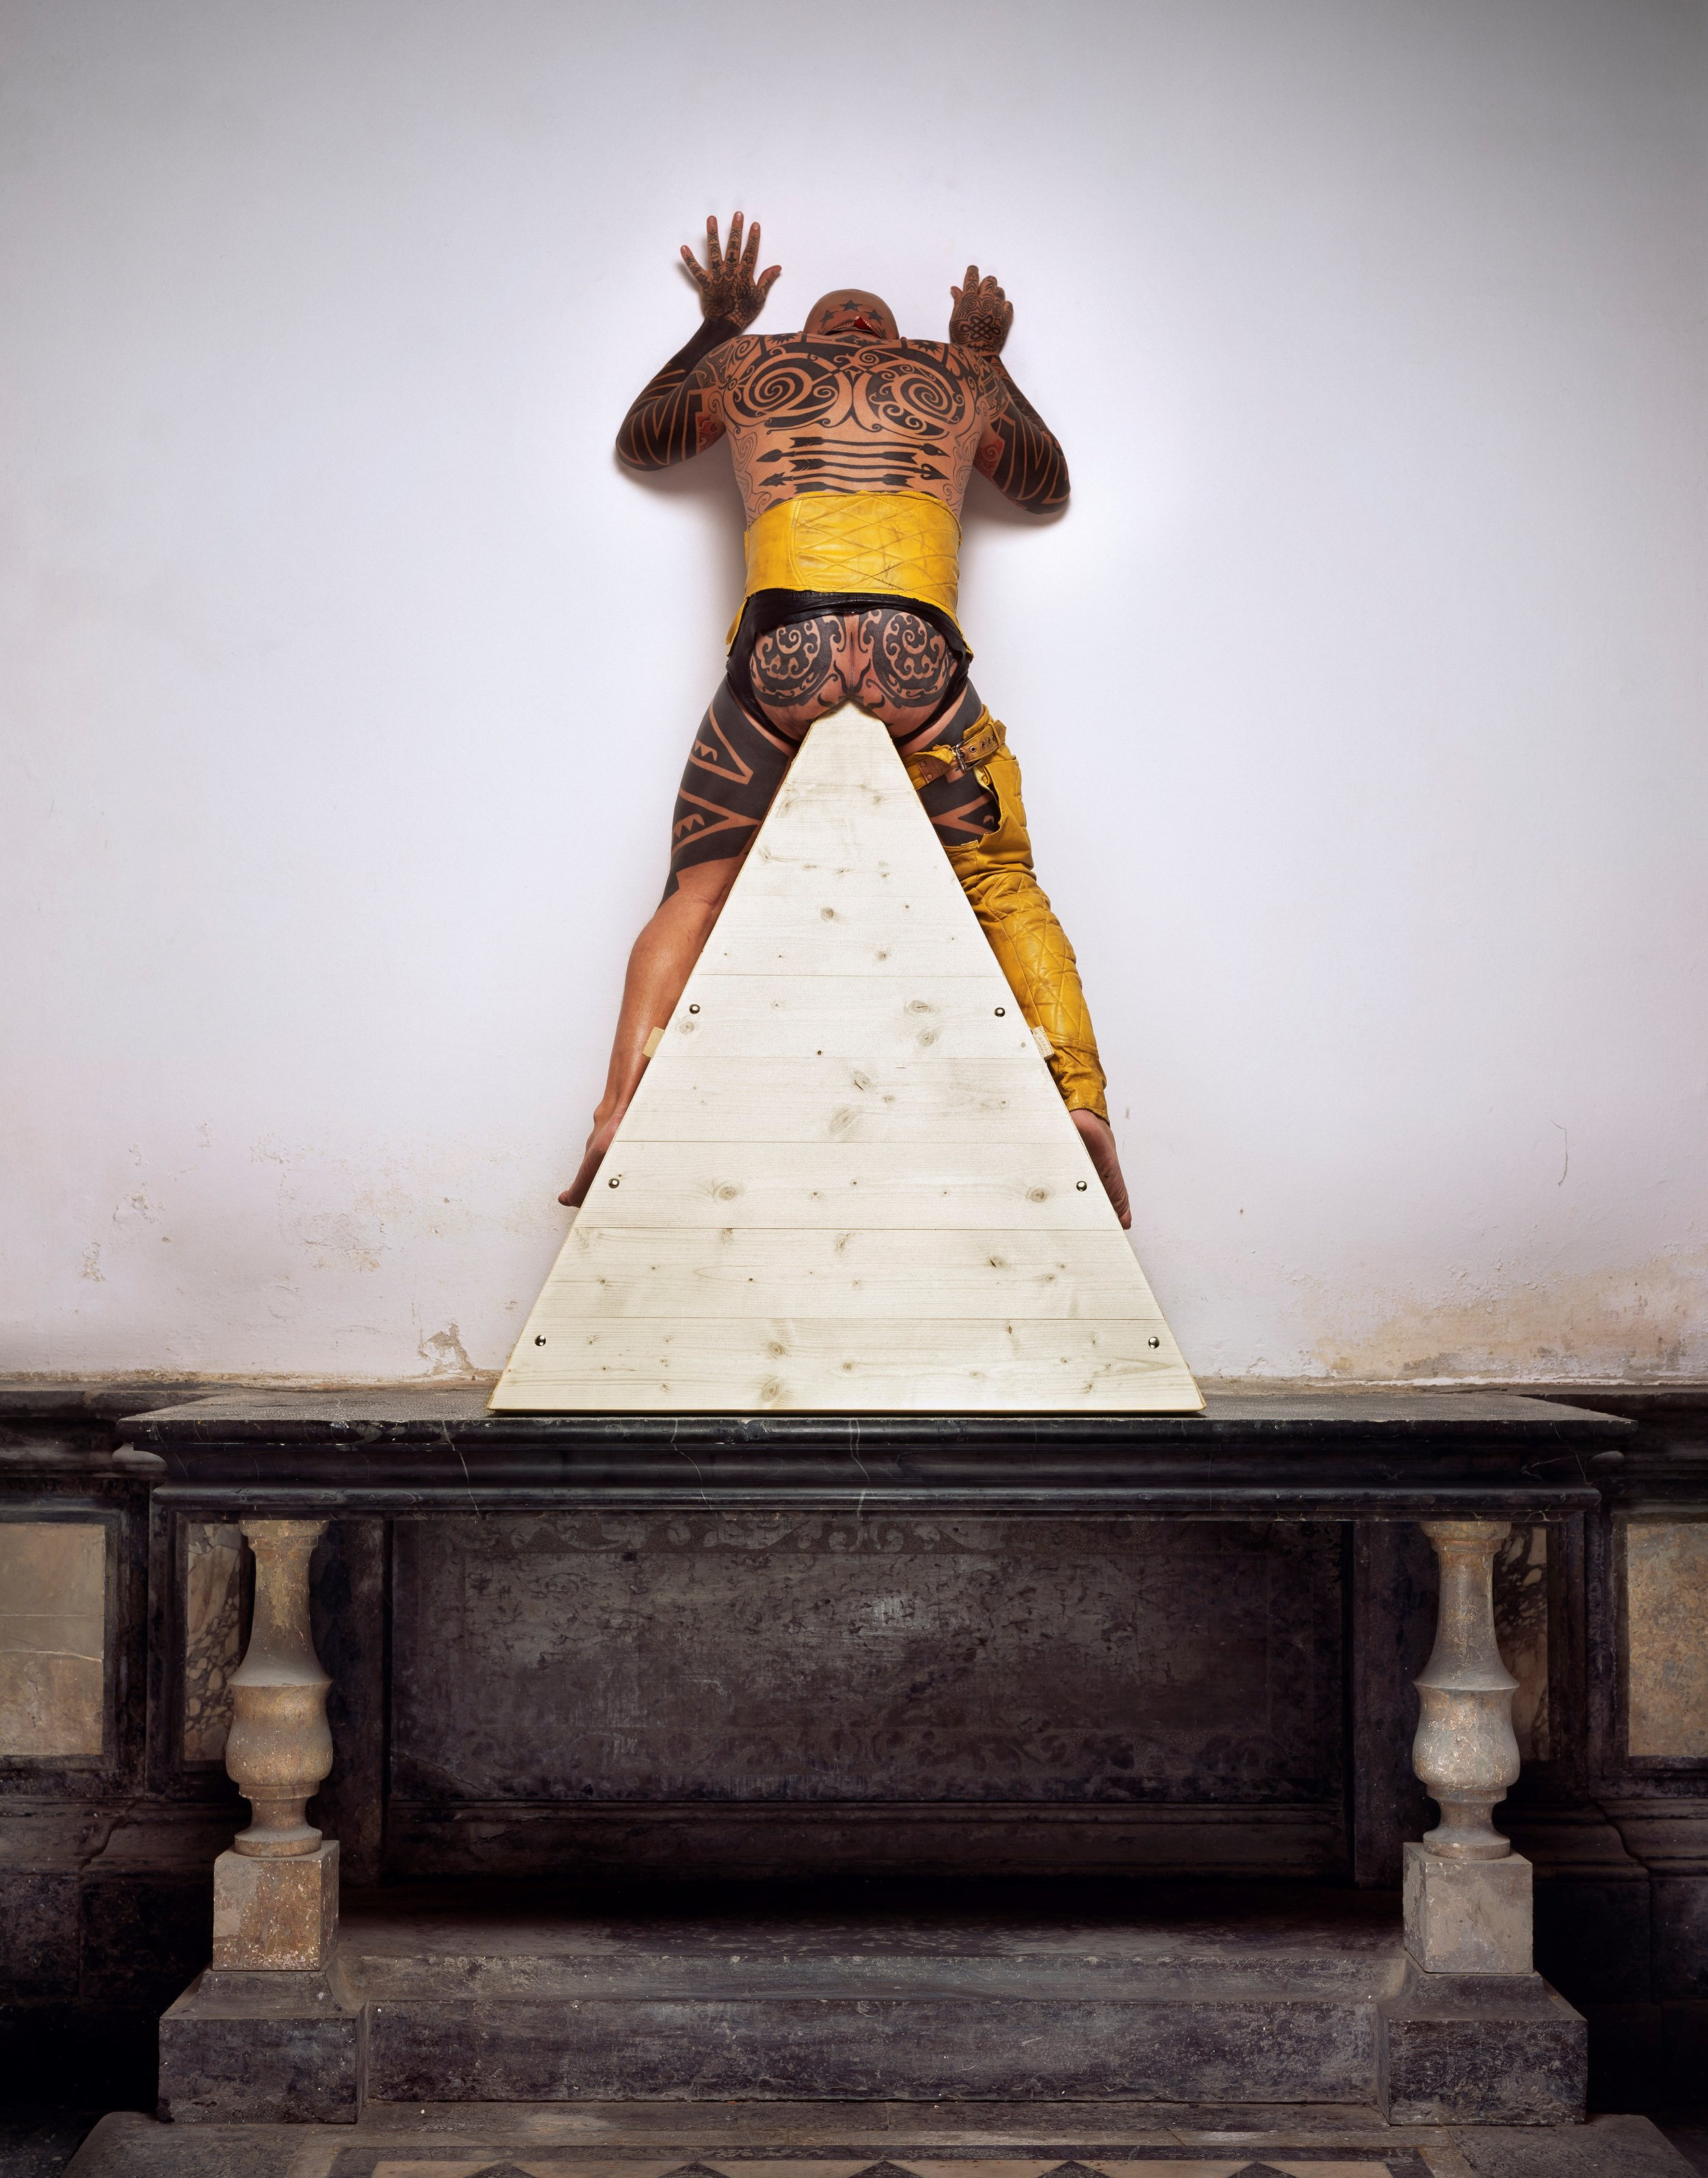 Ron Athey and Manuel Vason Collaboration #3, 2004 digital C-print 45 x 50 inches courtesy the artists and P.P.O.W, New York.